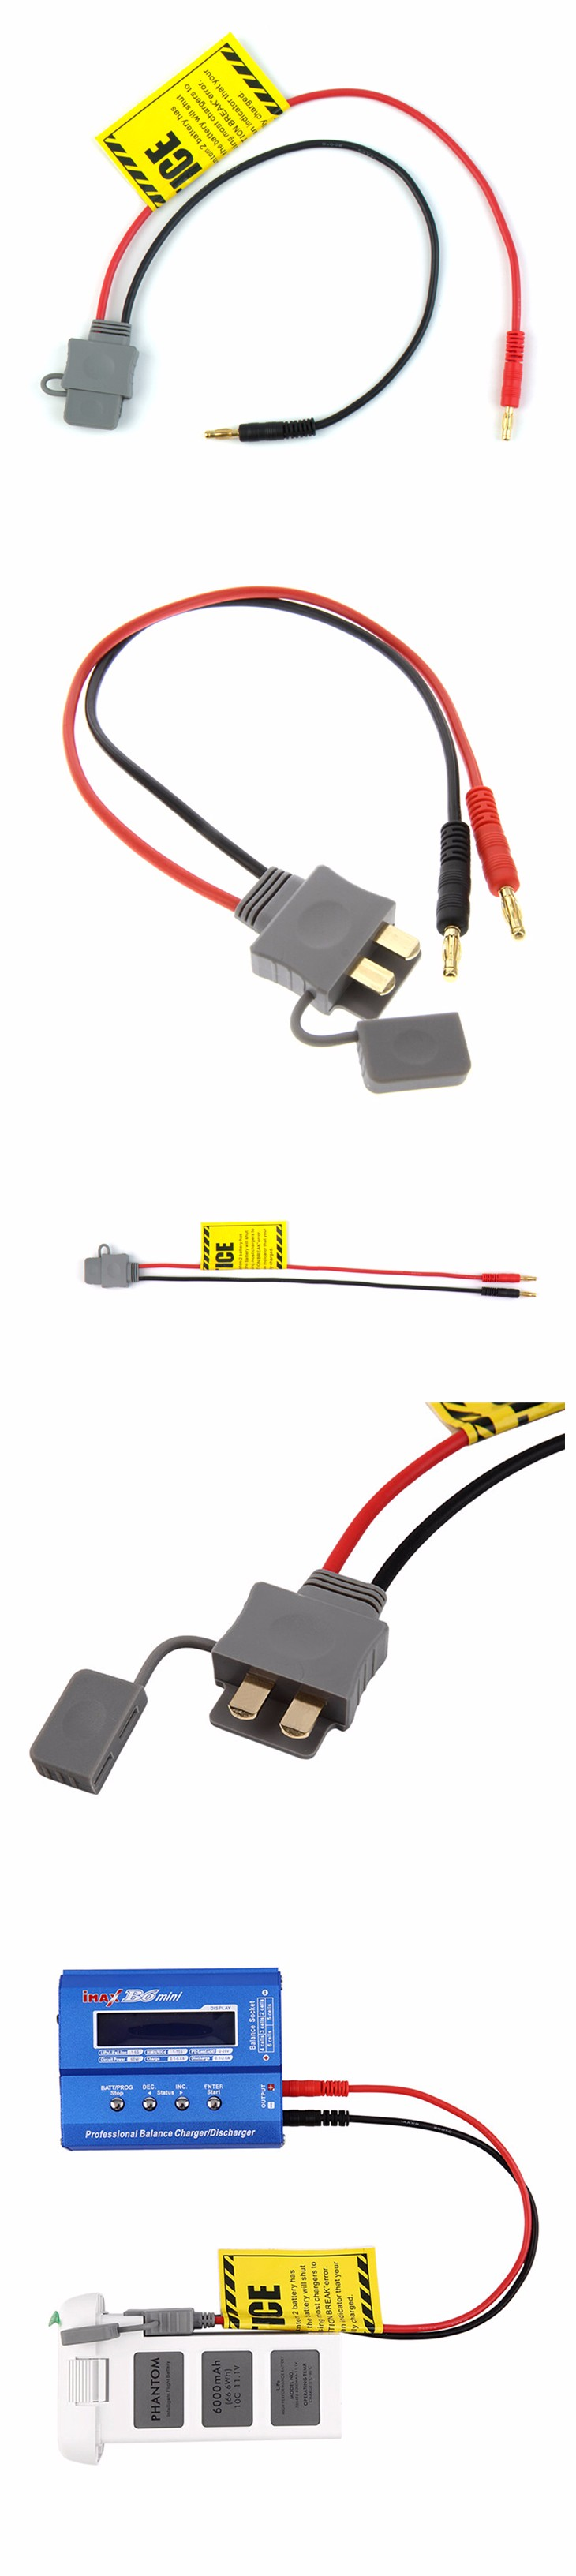 15cm B6 B6AC charger cable For DJI Phantom 2 3 B6 B6AC charging cable adaptor DJI Accessories